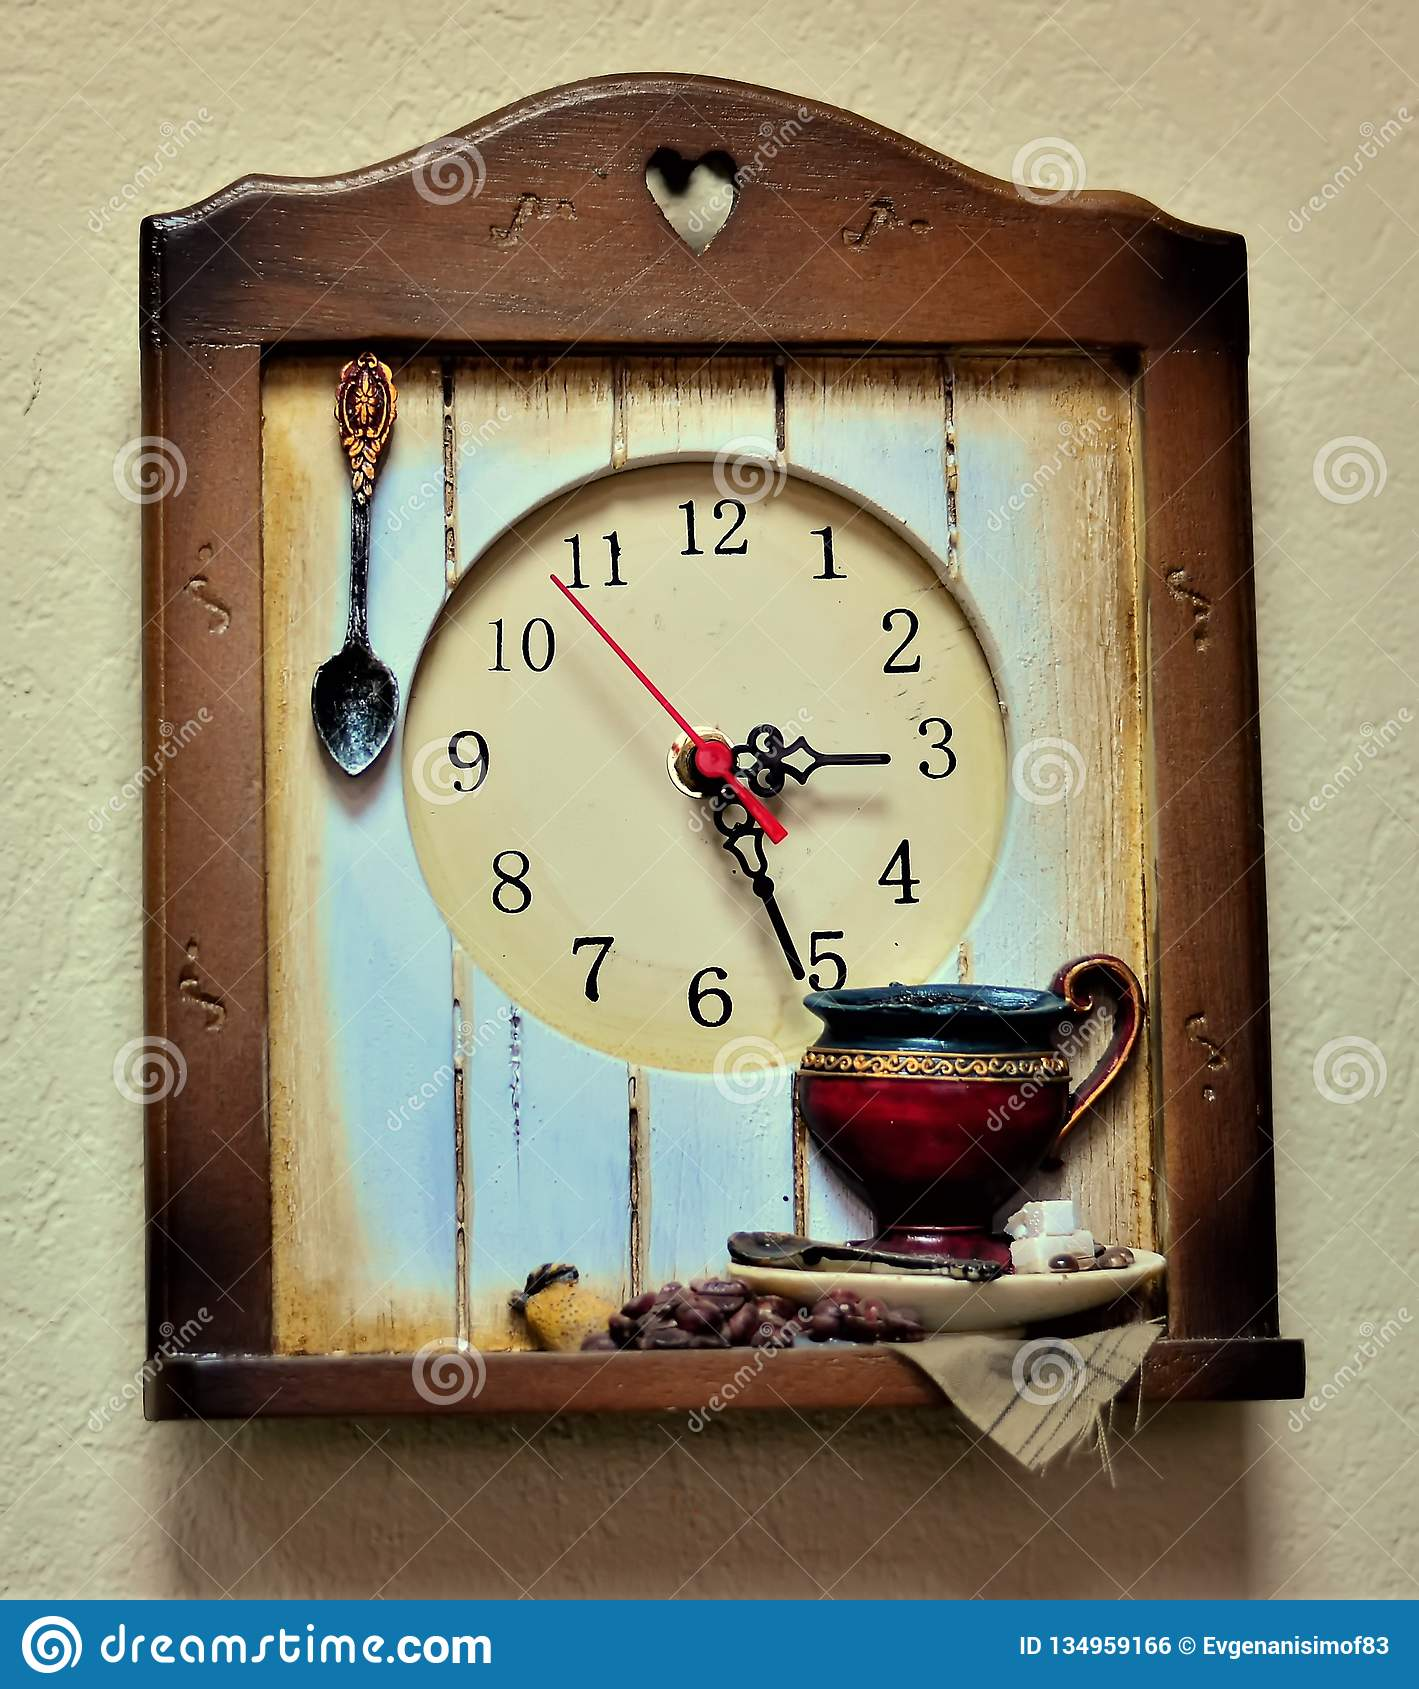 Wall mounted kitchen clock